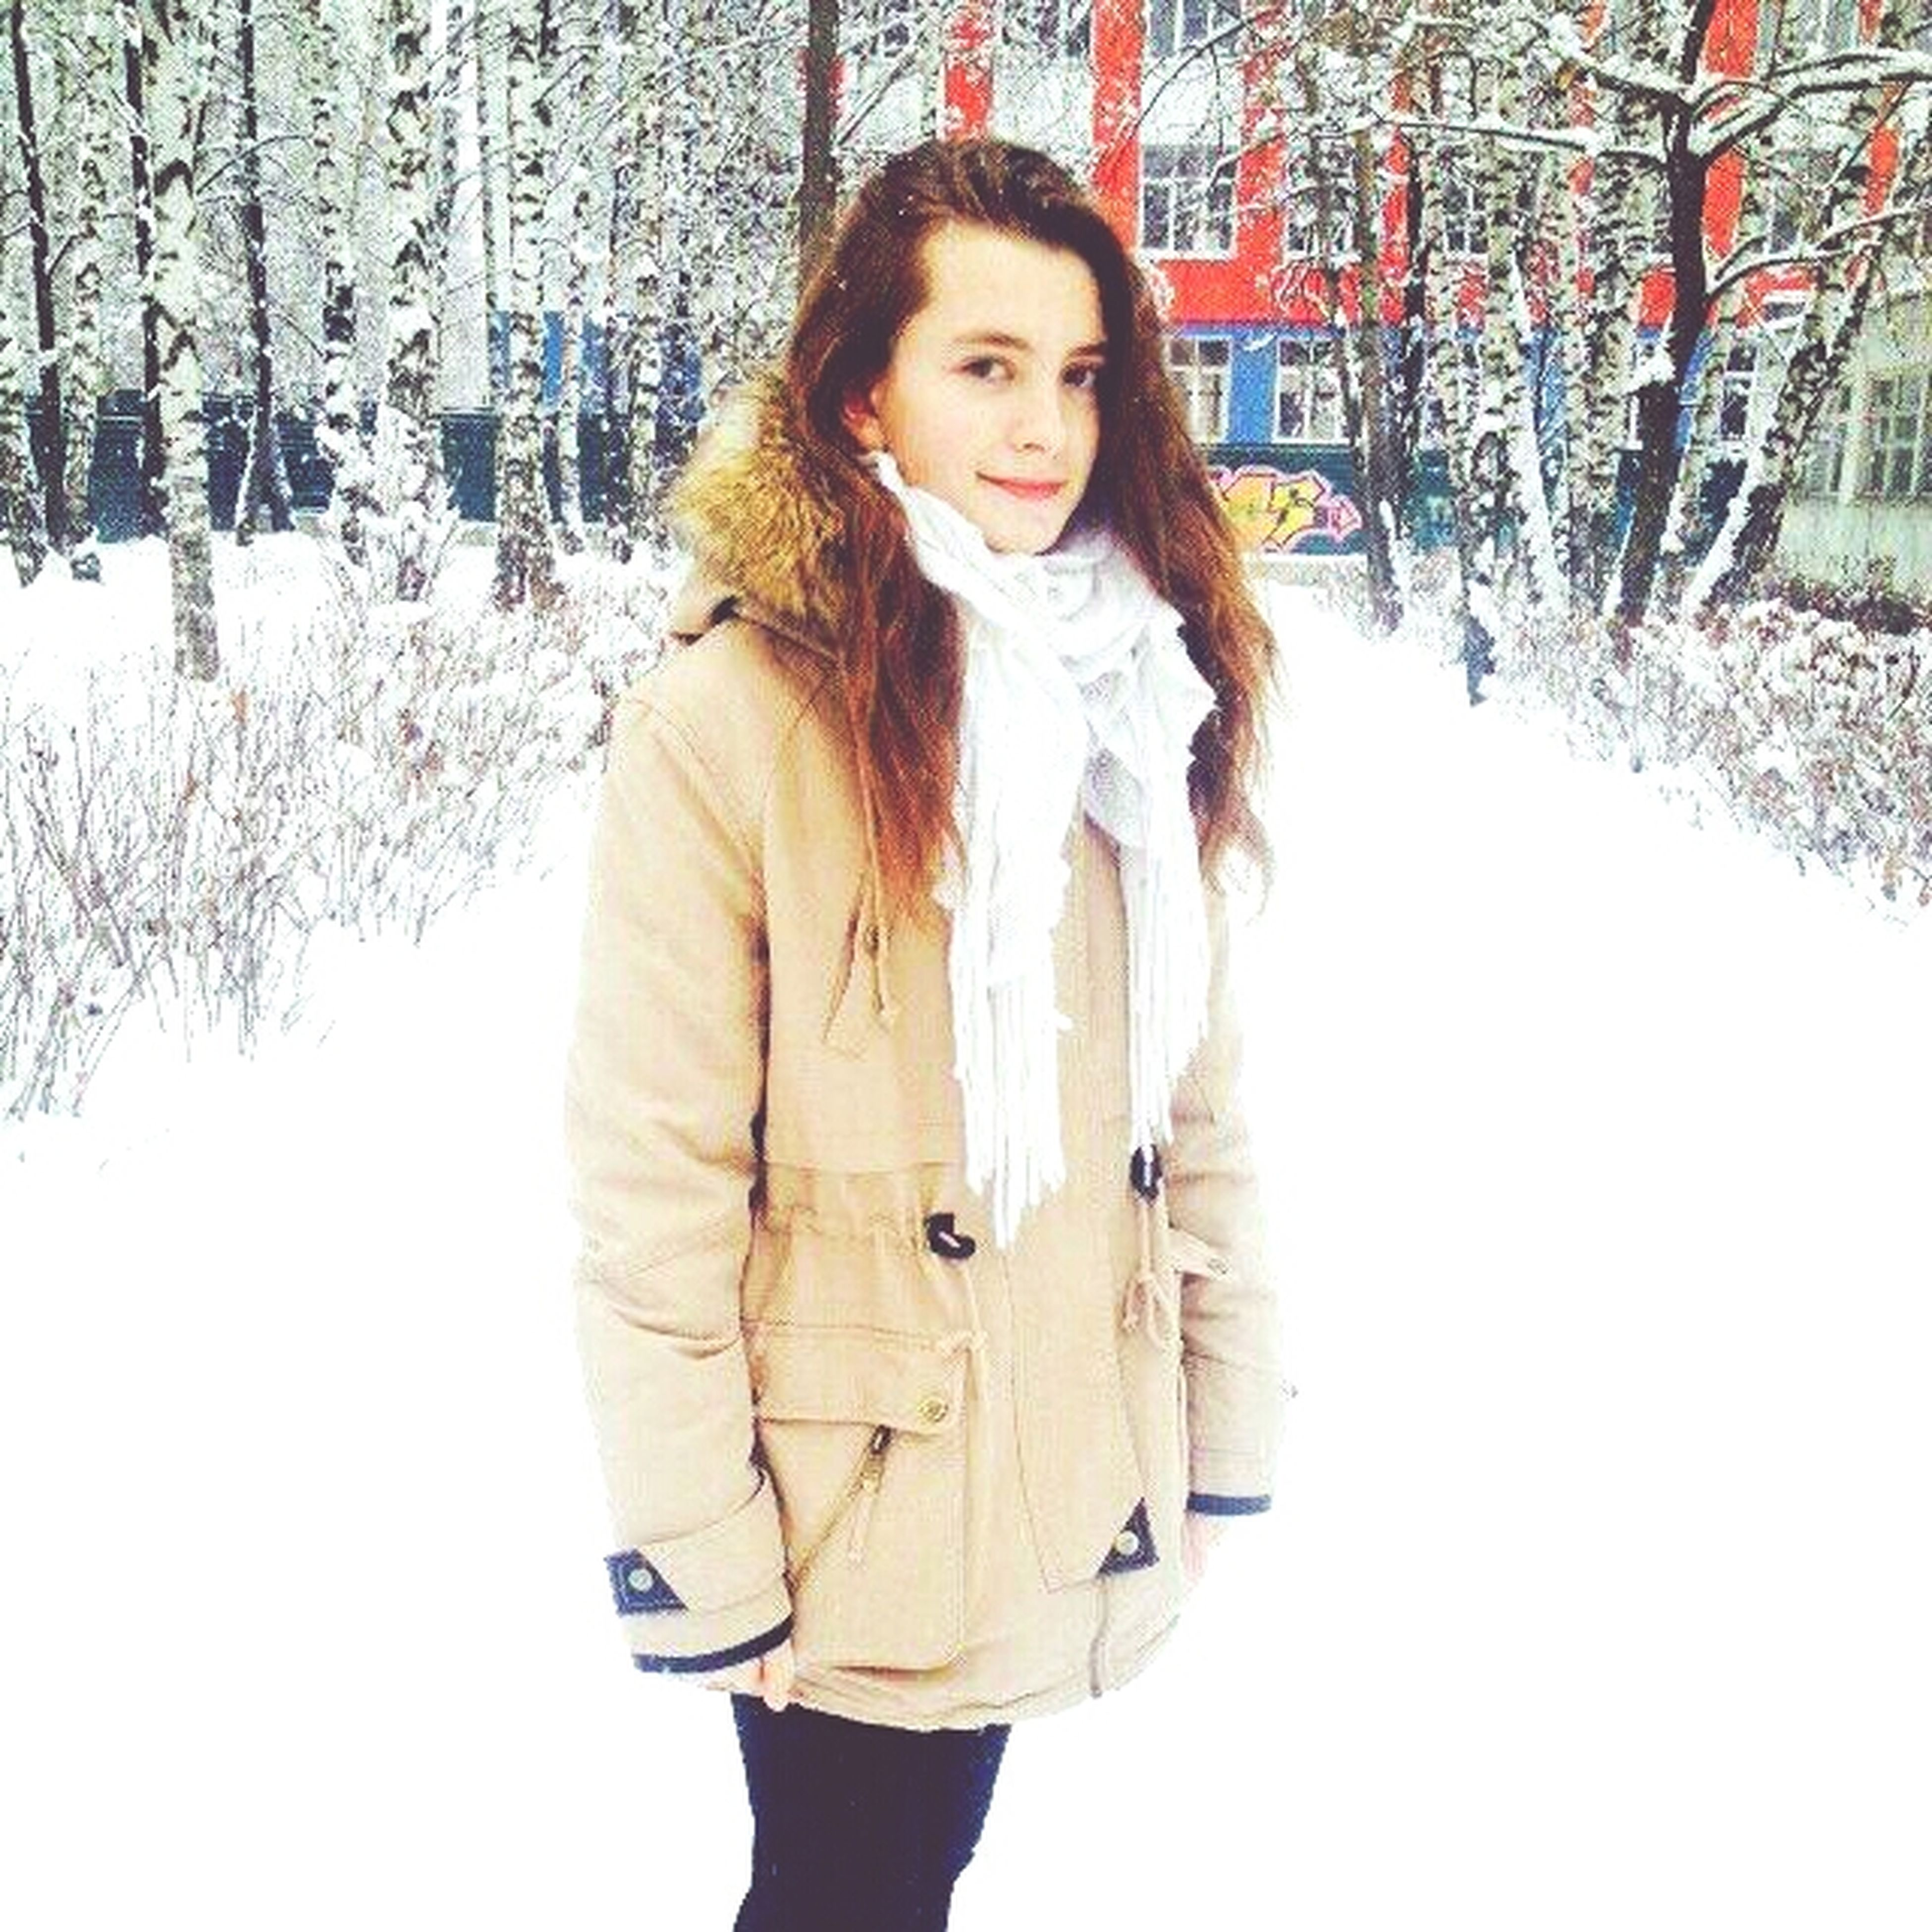 portrait, looking at camera, person, front view, lifestyles, young adult, standing, young women, three quarter length, casual clothing, leisure activity, long hair, smiling, warm clothing, season, happiness, waist up, winter